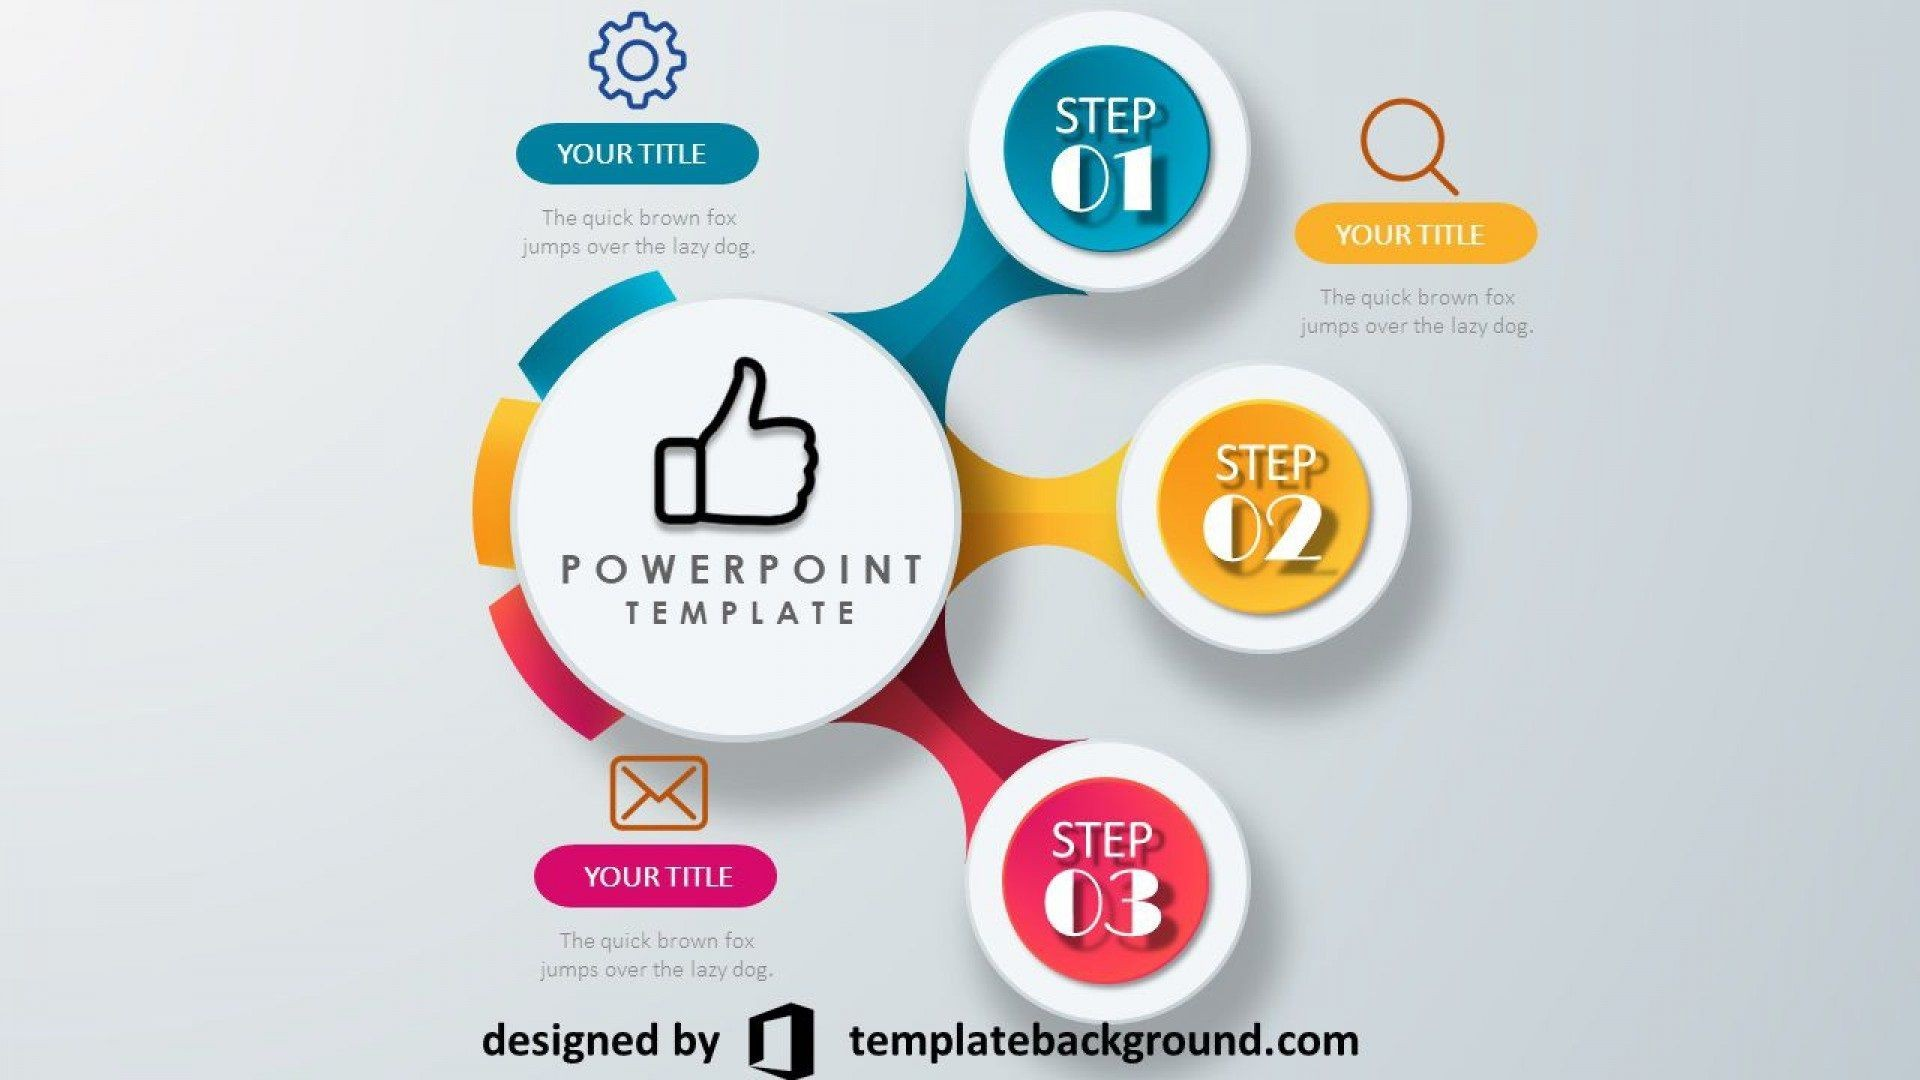 006 Dreaded 3d Animated Powerpoint Template Free Download 2010 Picture 1920